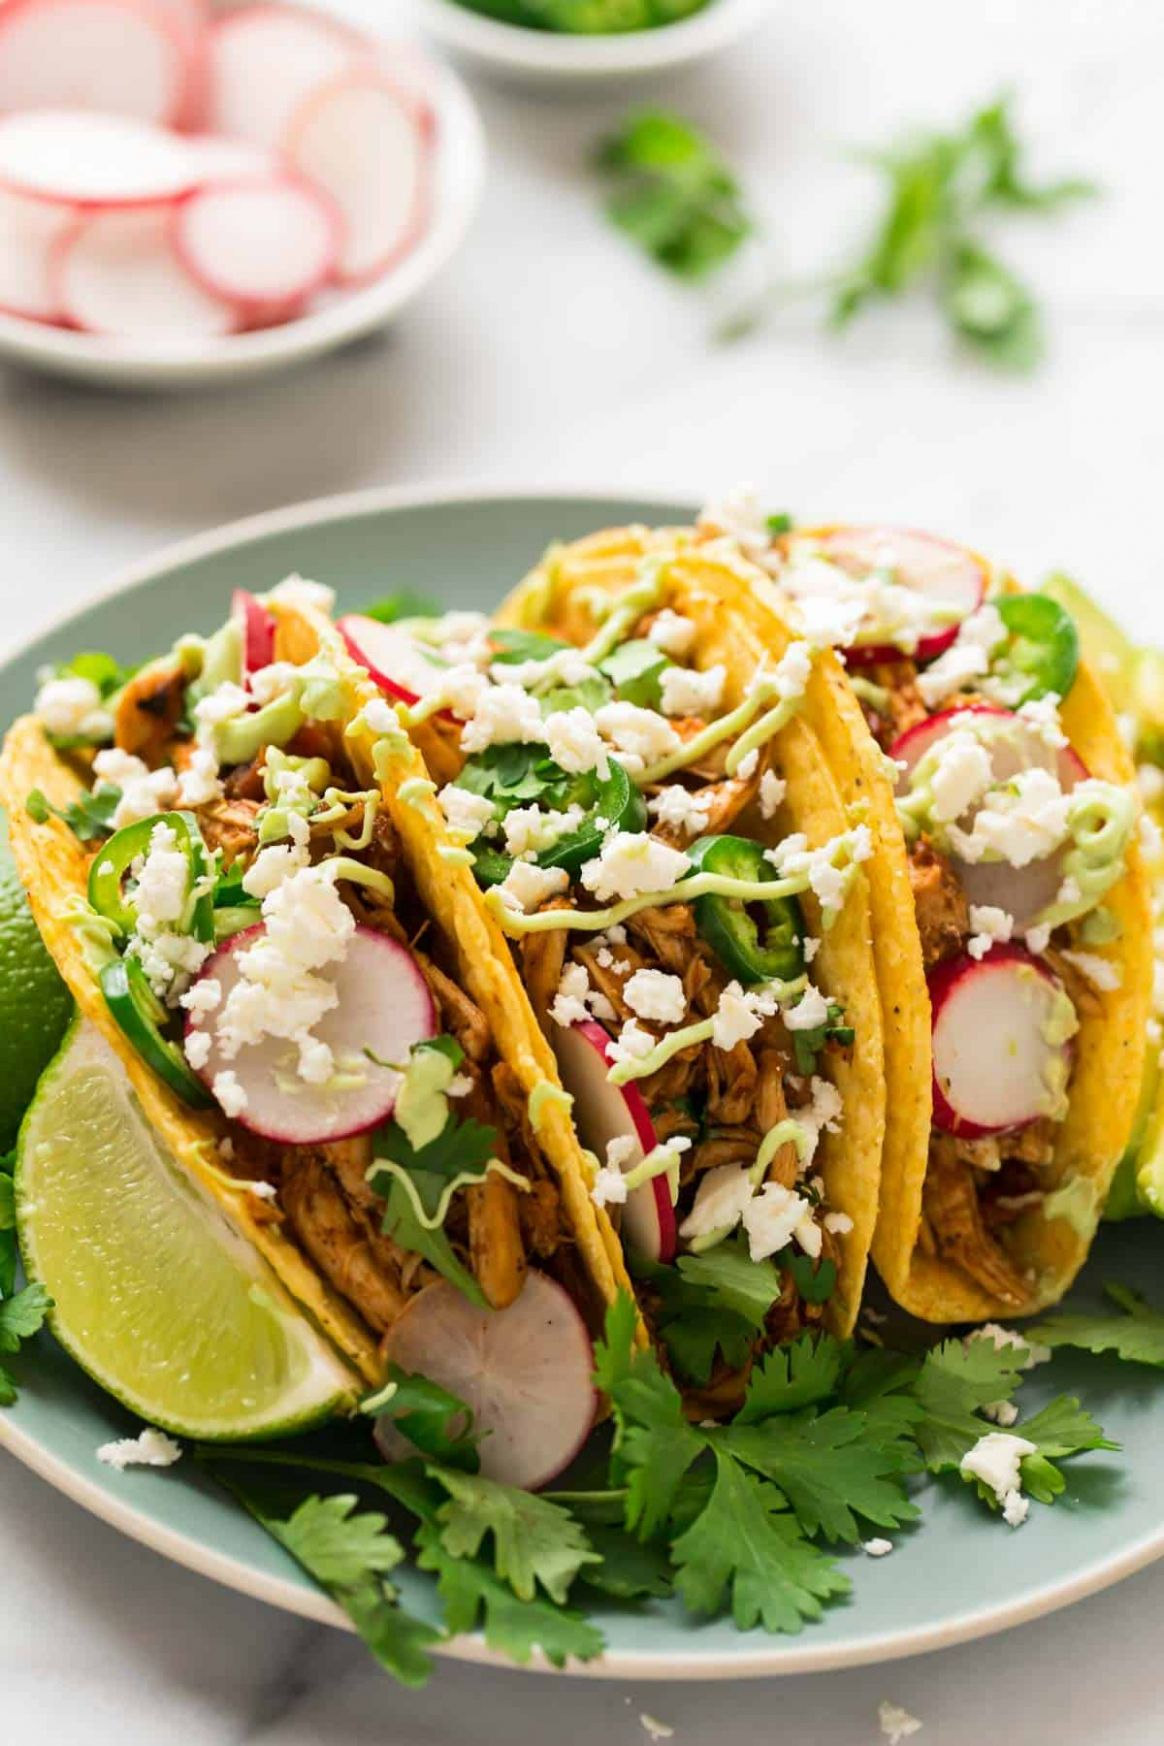 Instant Pot Shredded Chicken Tacos - Recipes Chicken Tacos